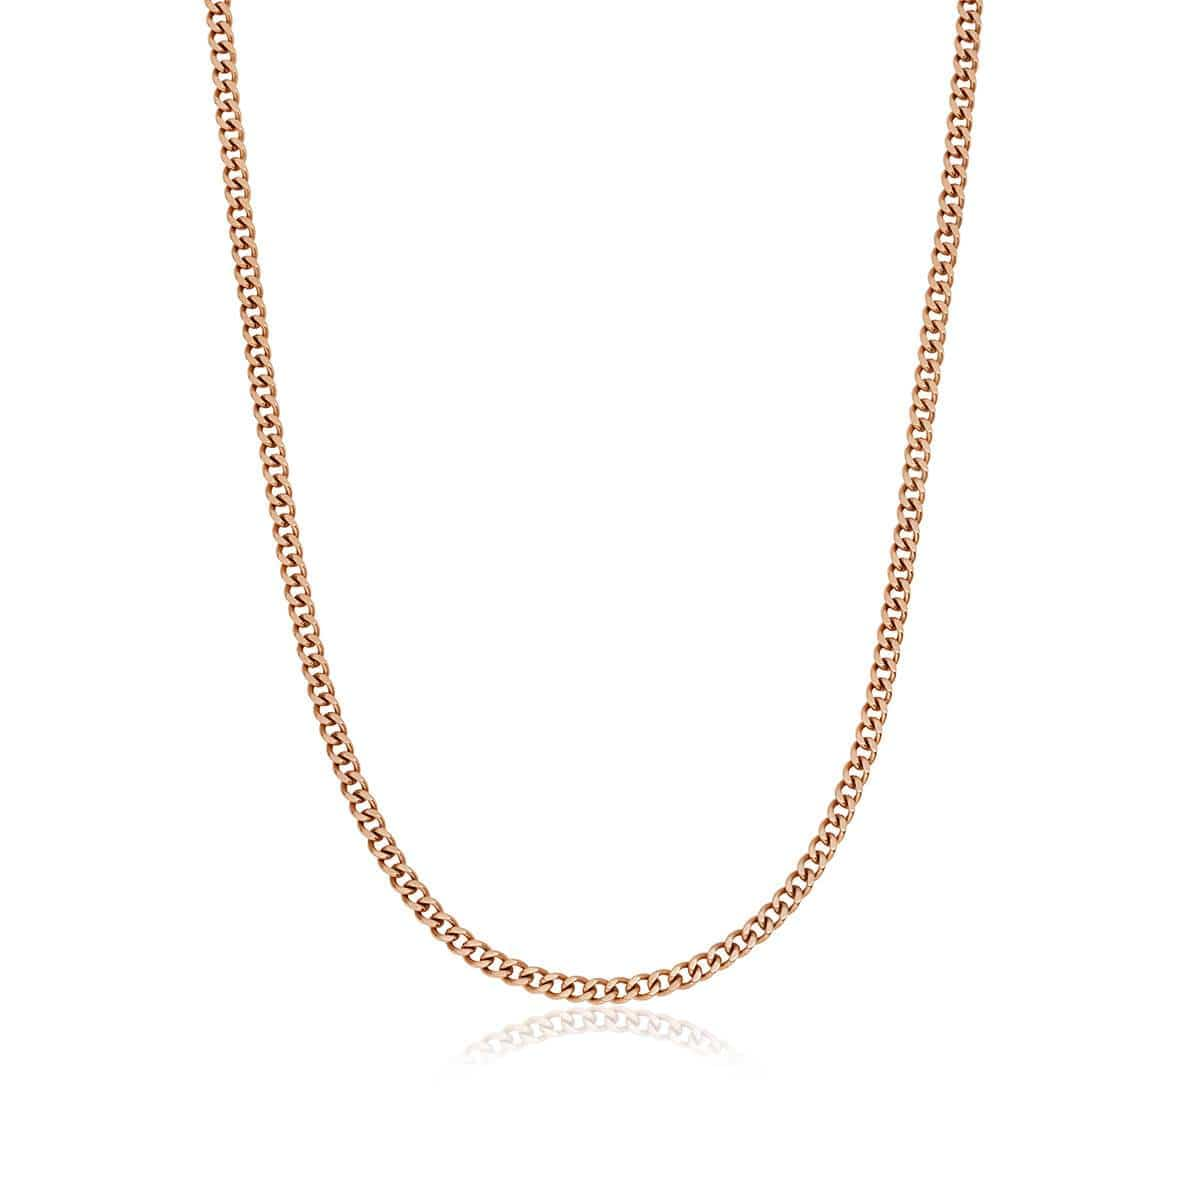 Selected Small Curb Chain Necklace (Rose Gold)